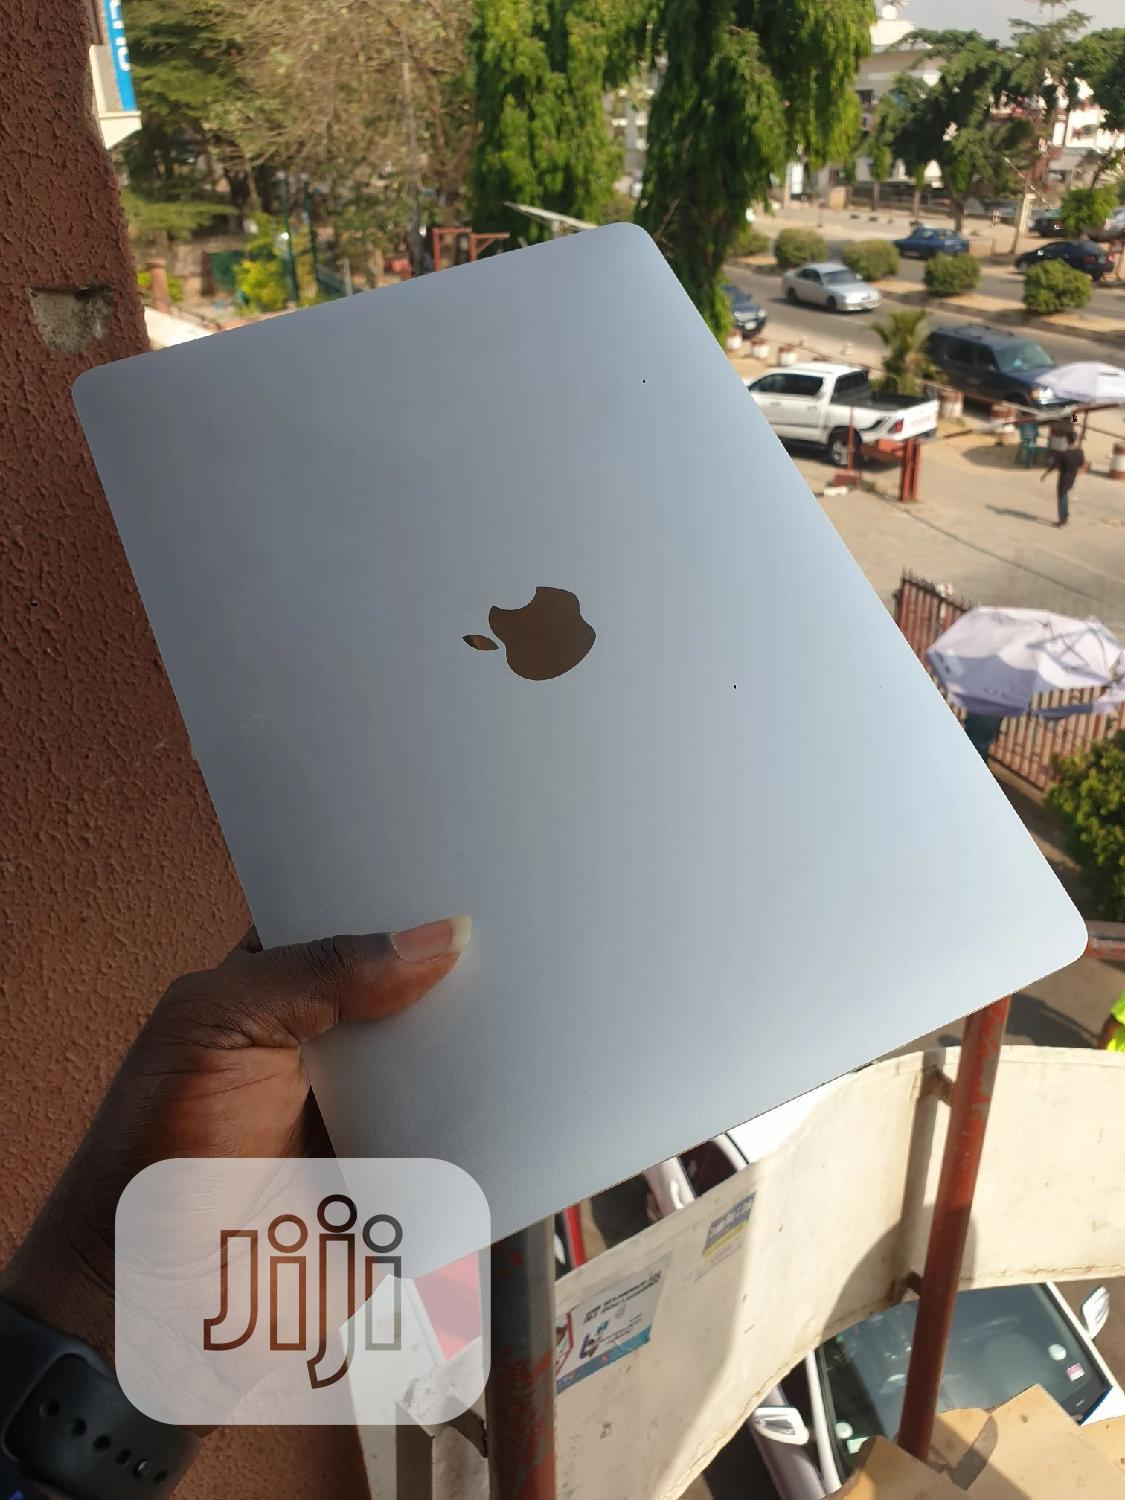 Laptop Apple MacBook 2018 8GB Intel Core I5 SSD 256GB   Laptops & Computers for sale in Wuse 2, Abuja (FCT) State, Nigeria